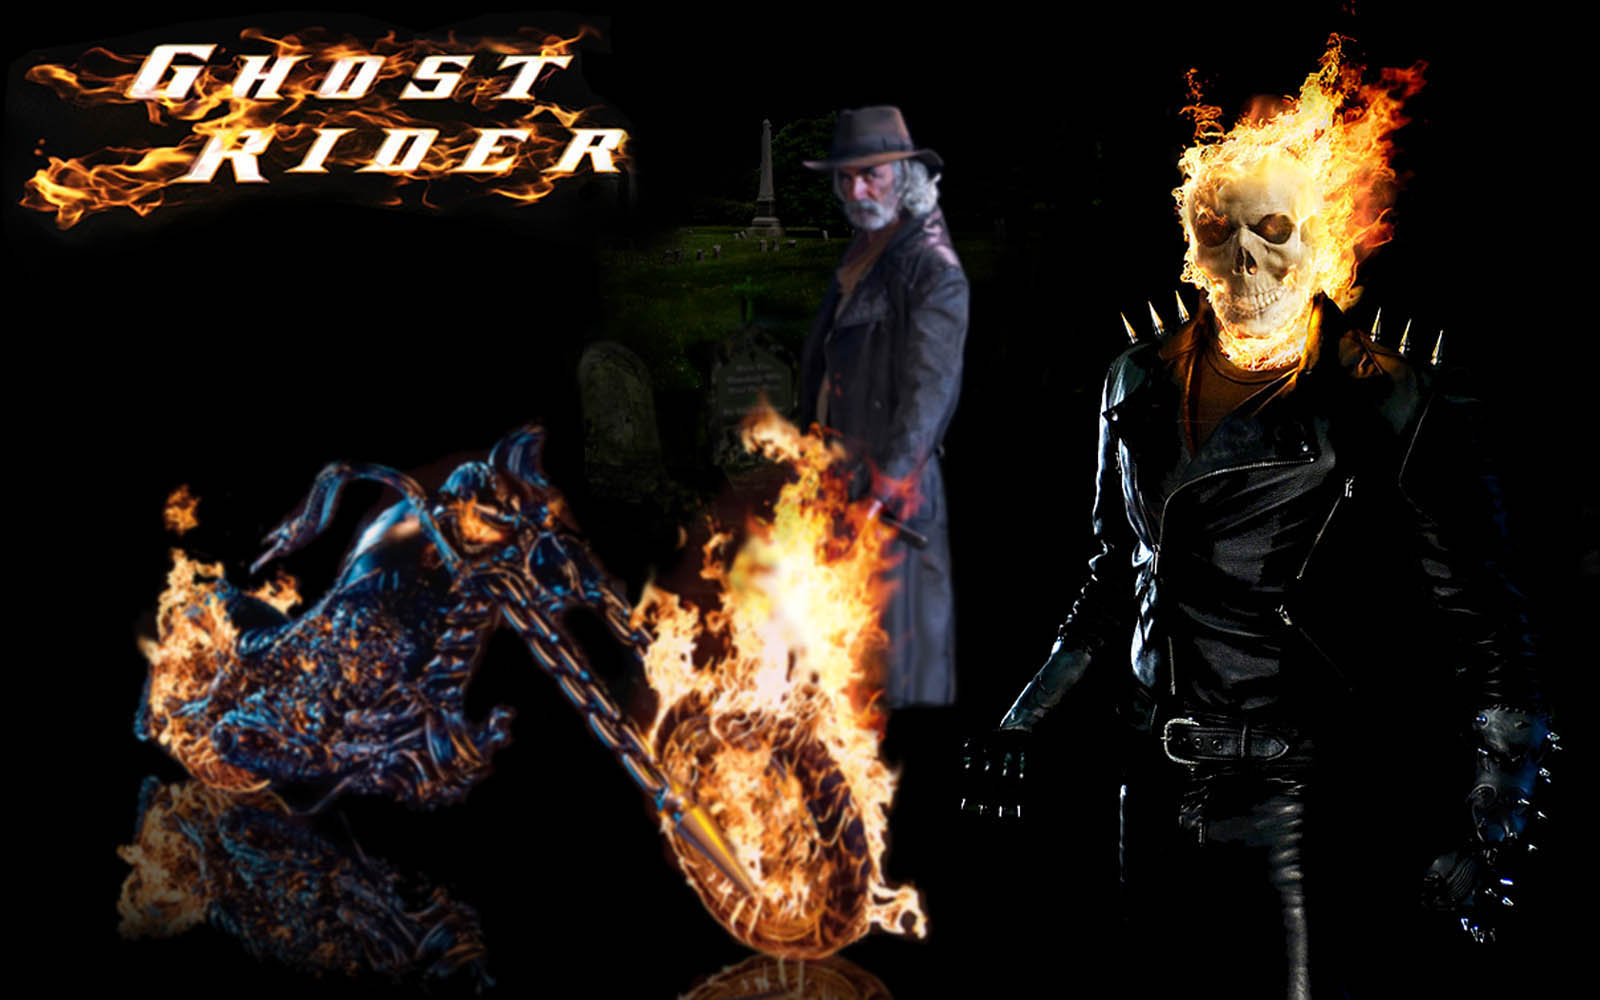 wallpaper Ghost Rider Wallpapers 1600x1000